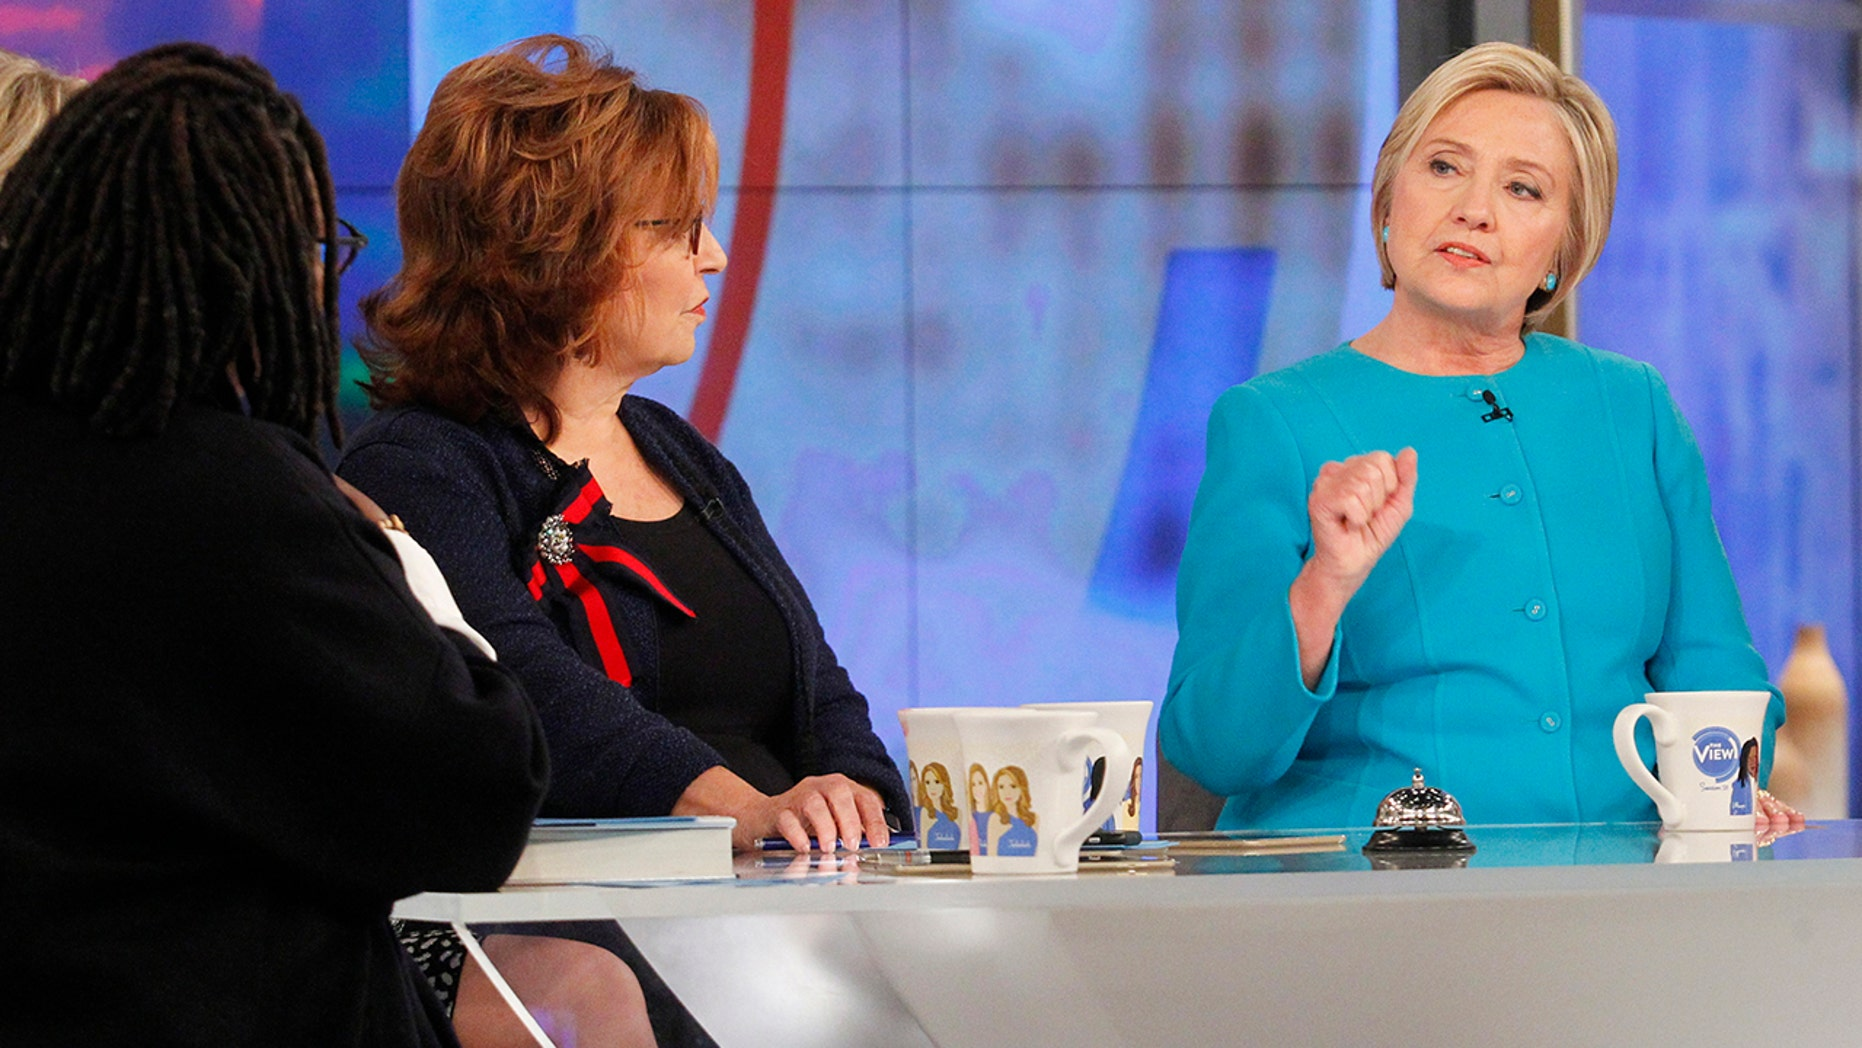 """THE VIEW - Hillary Clinton is the guest Wednesday, September 13, 2017 on ABC's """"The View.""""    """"The View"""" airs Monday-Friday (11:00 am-12:00 pm, ET) on the ABC Television Network.    (ABC/Lou Rocco)  WHOOPI GOLDBERG, JOY BEHAR, HILLARY CLINTON"""